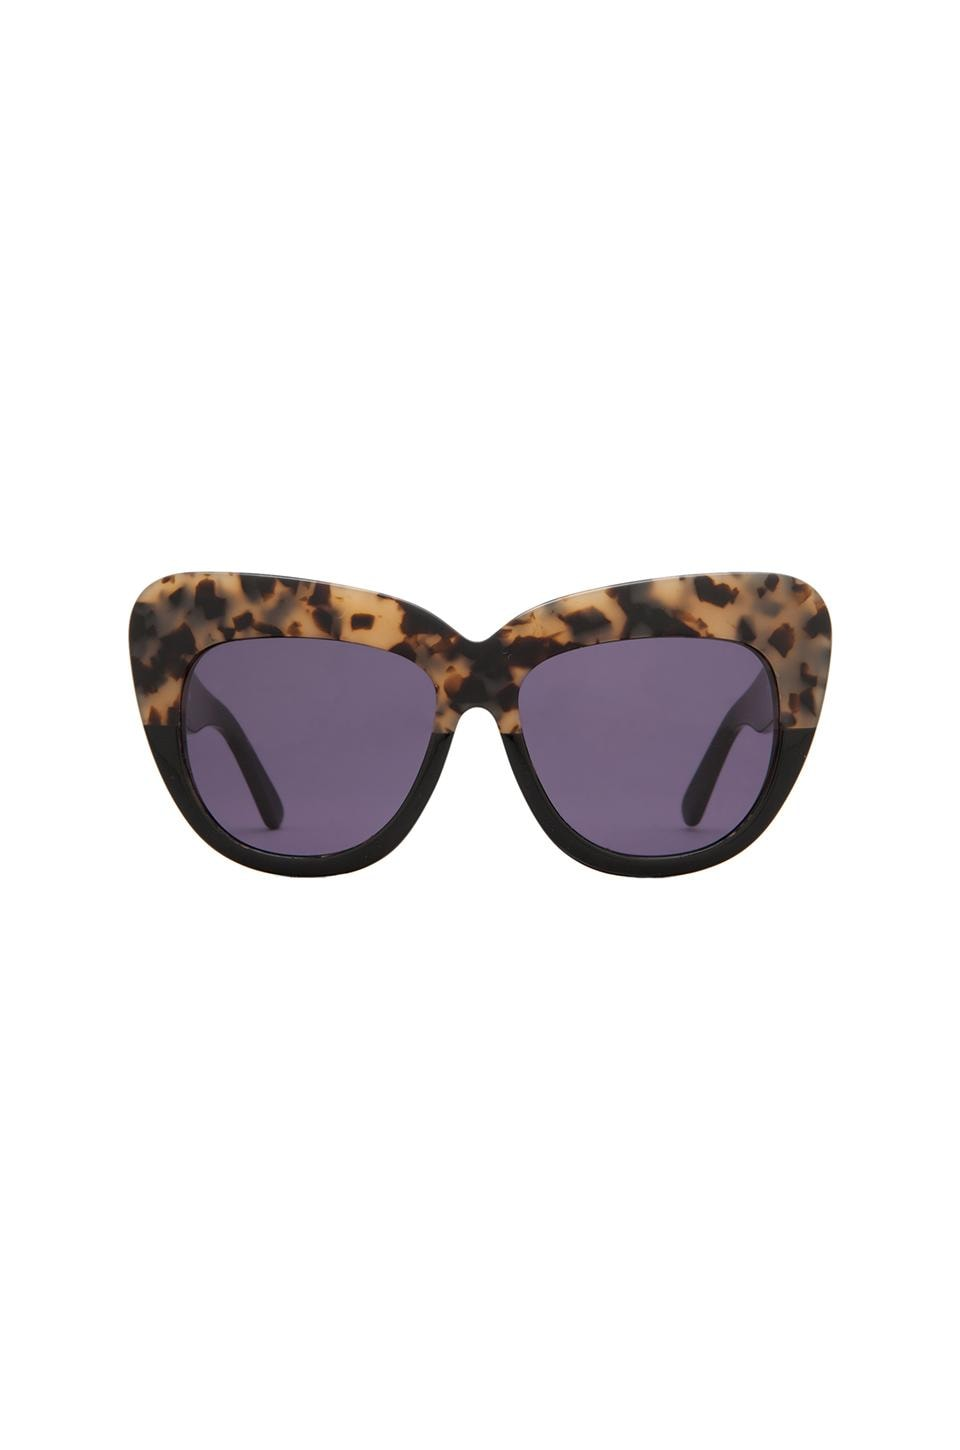 House of Harlow Chelsea Sunglasses in Black Oreo